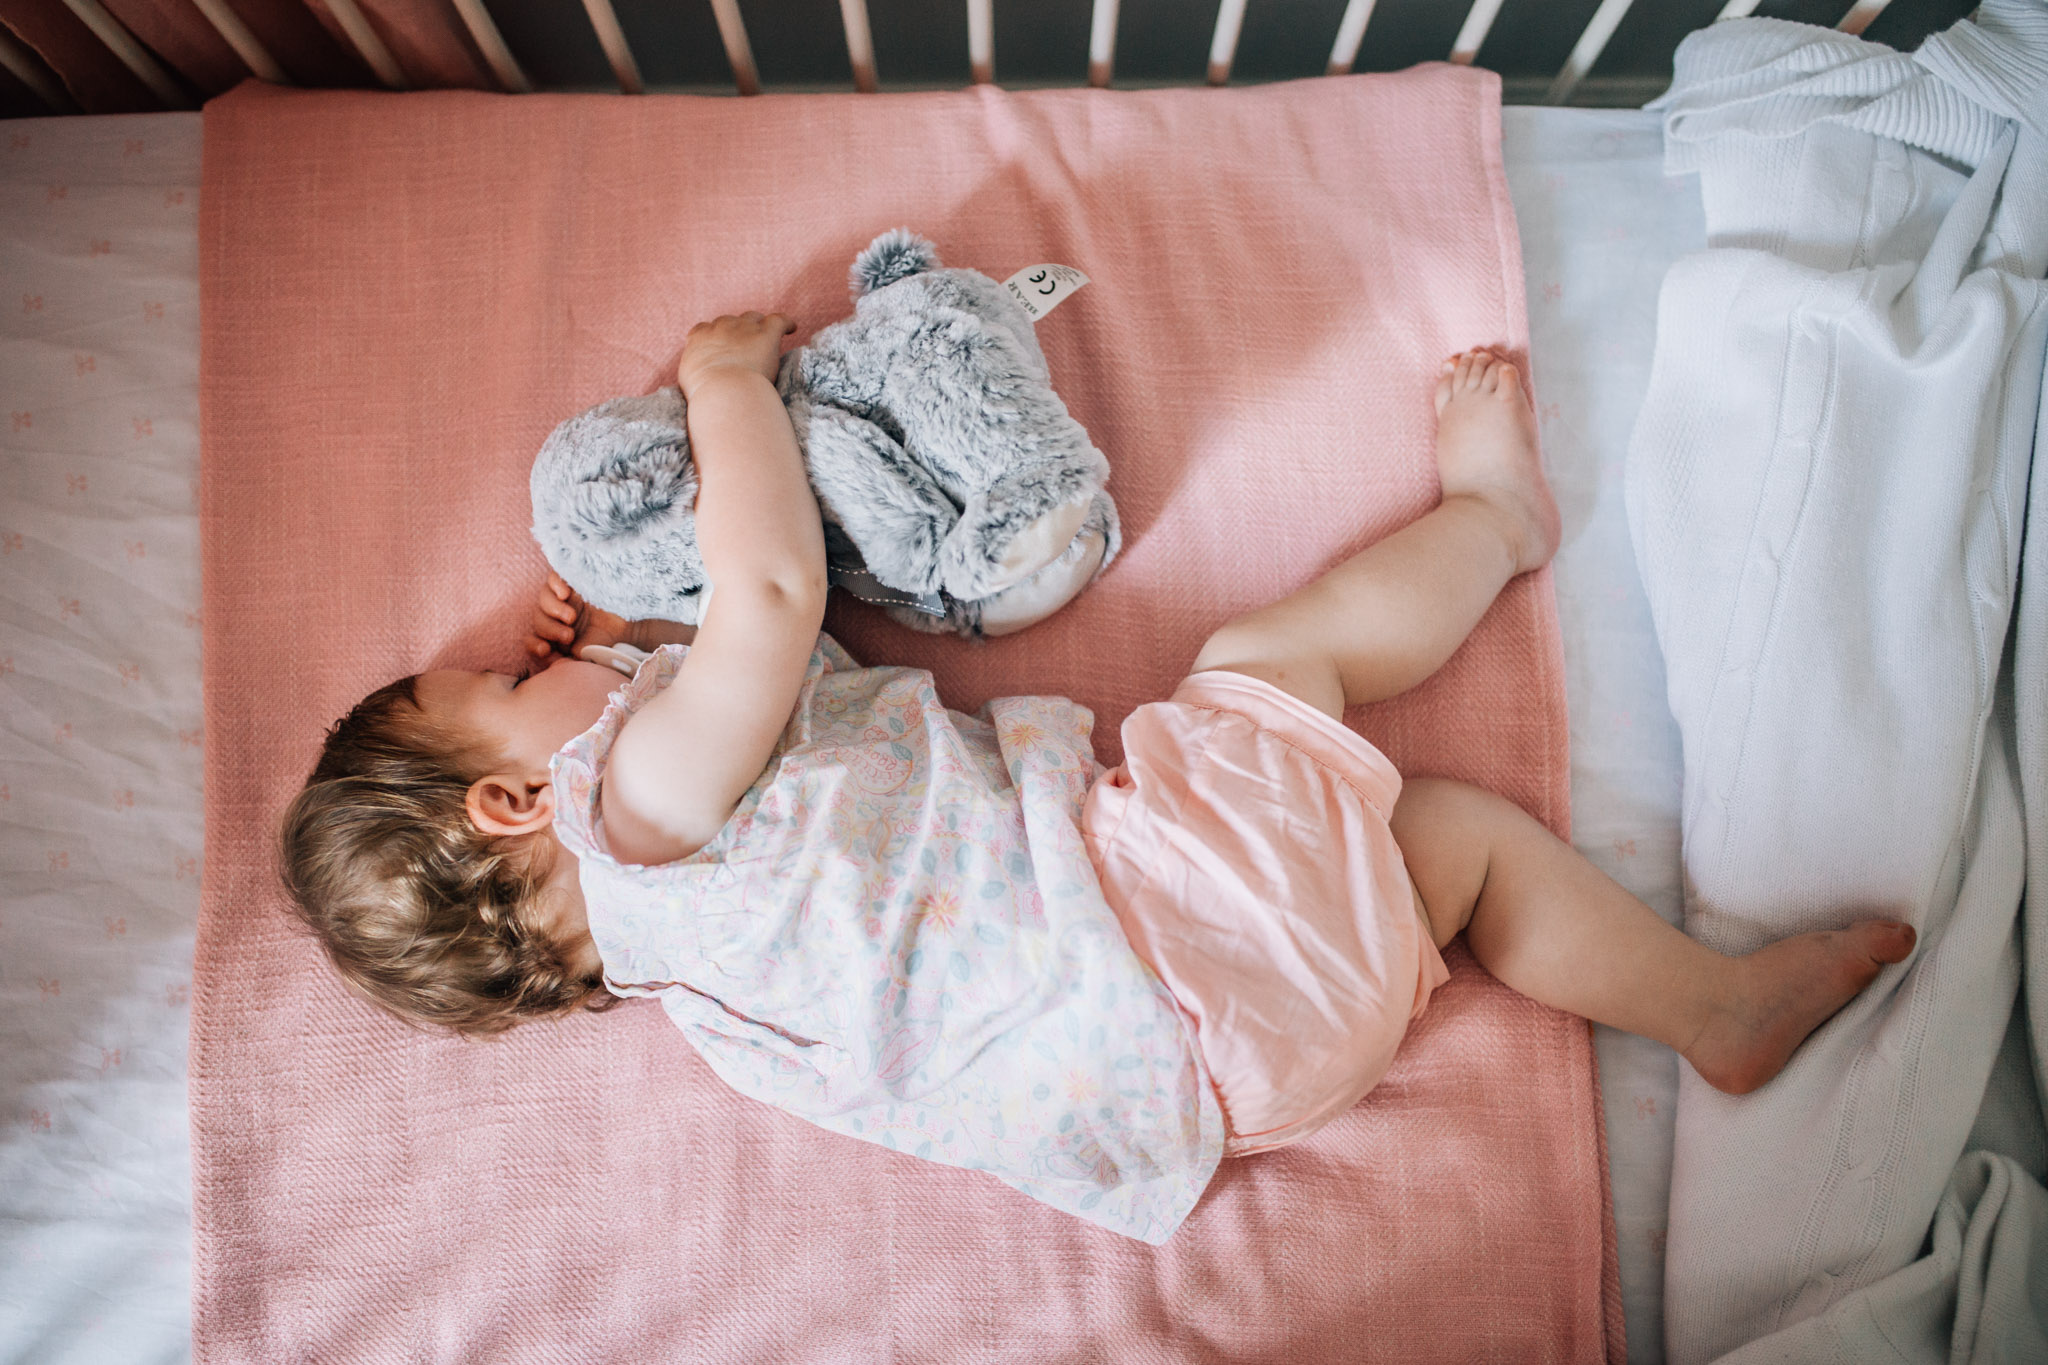 This little miss wont always need a morning nap. Now they'll always remember how sweet she looked snuggled up with her lovey in the first room she ever had.